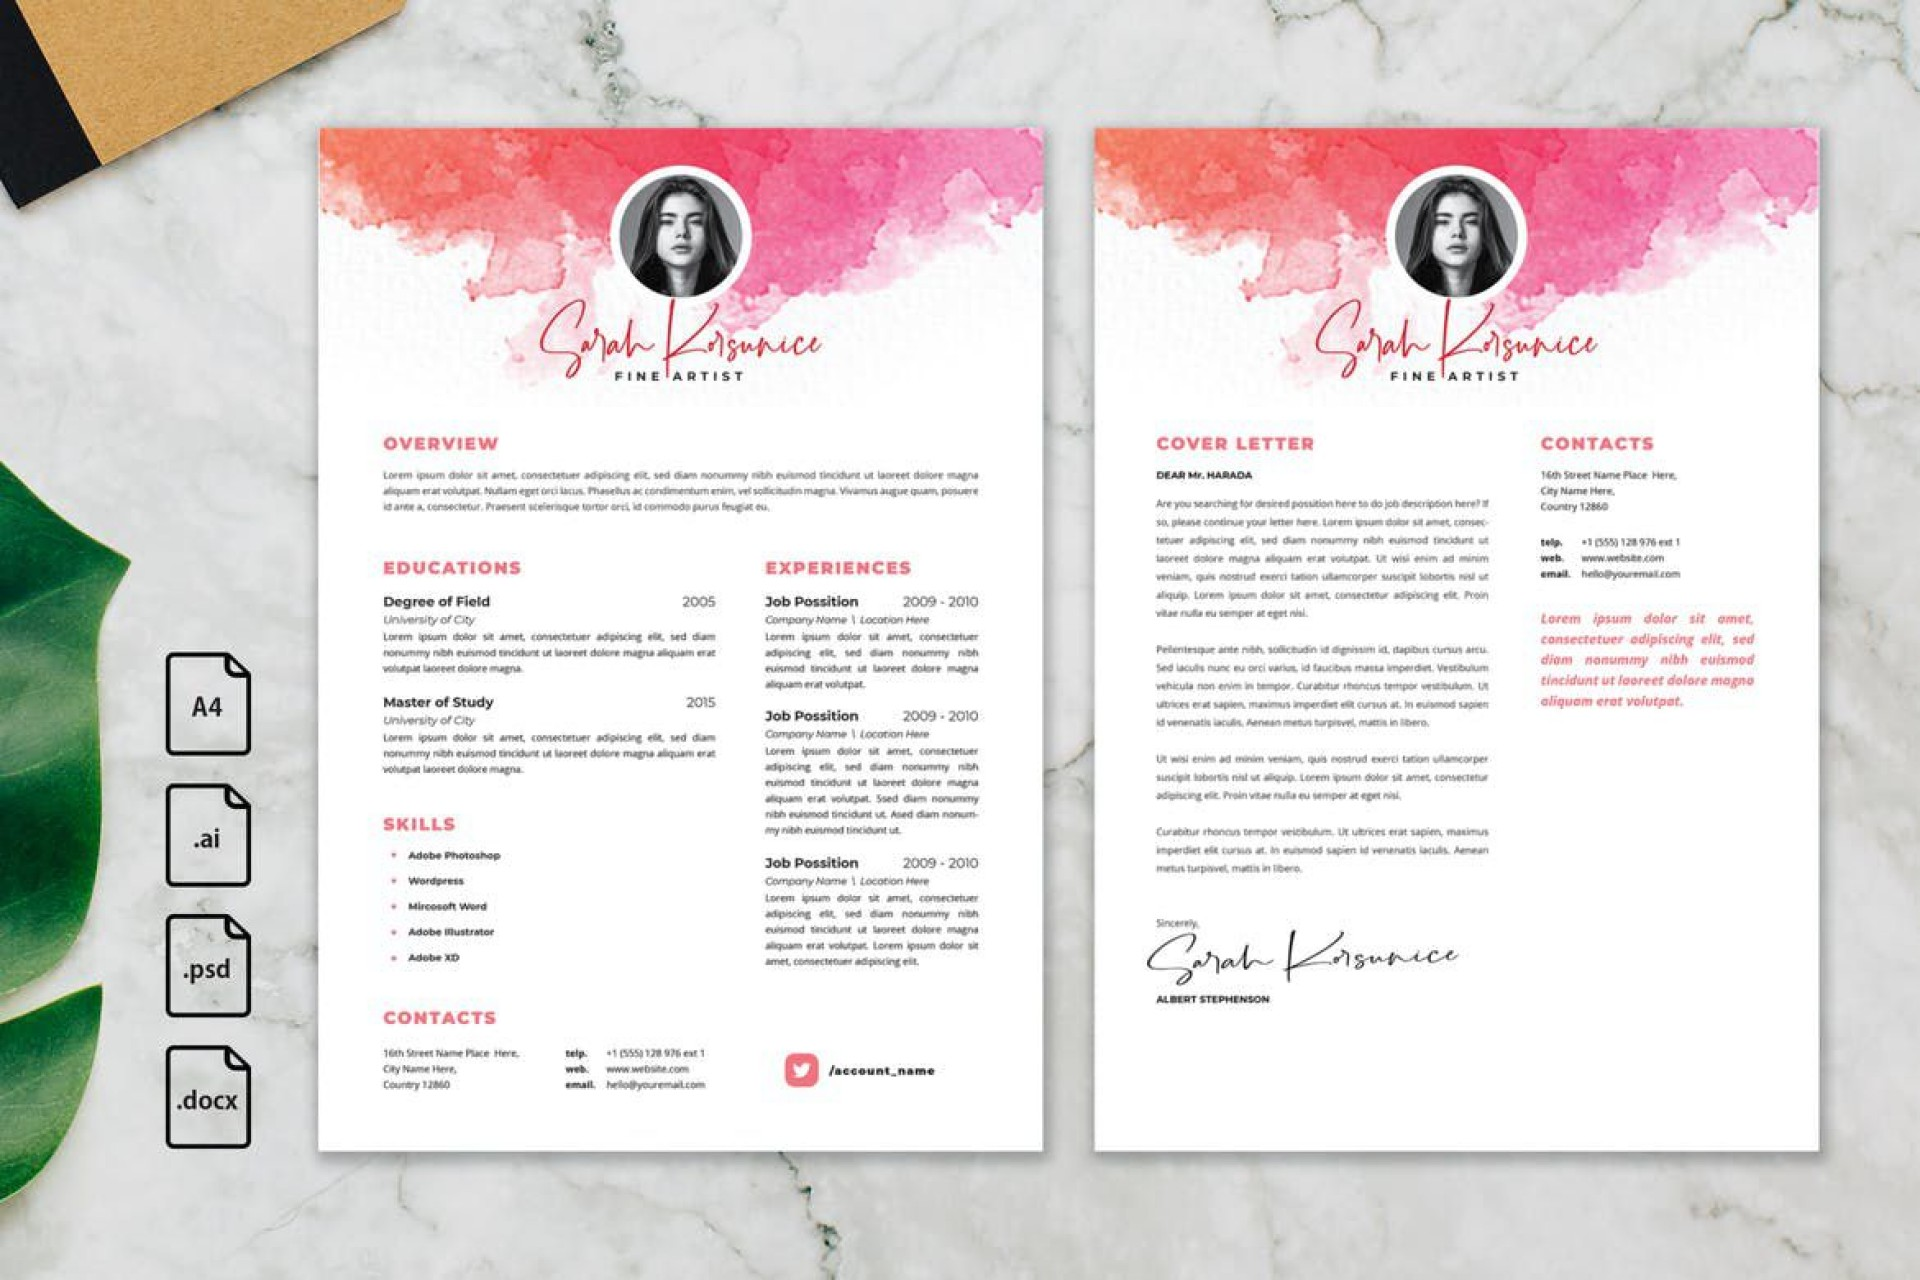 006 Fearsome Photoshop Resume Template Free Psd High Definition 1920